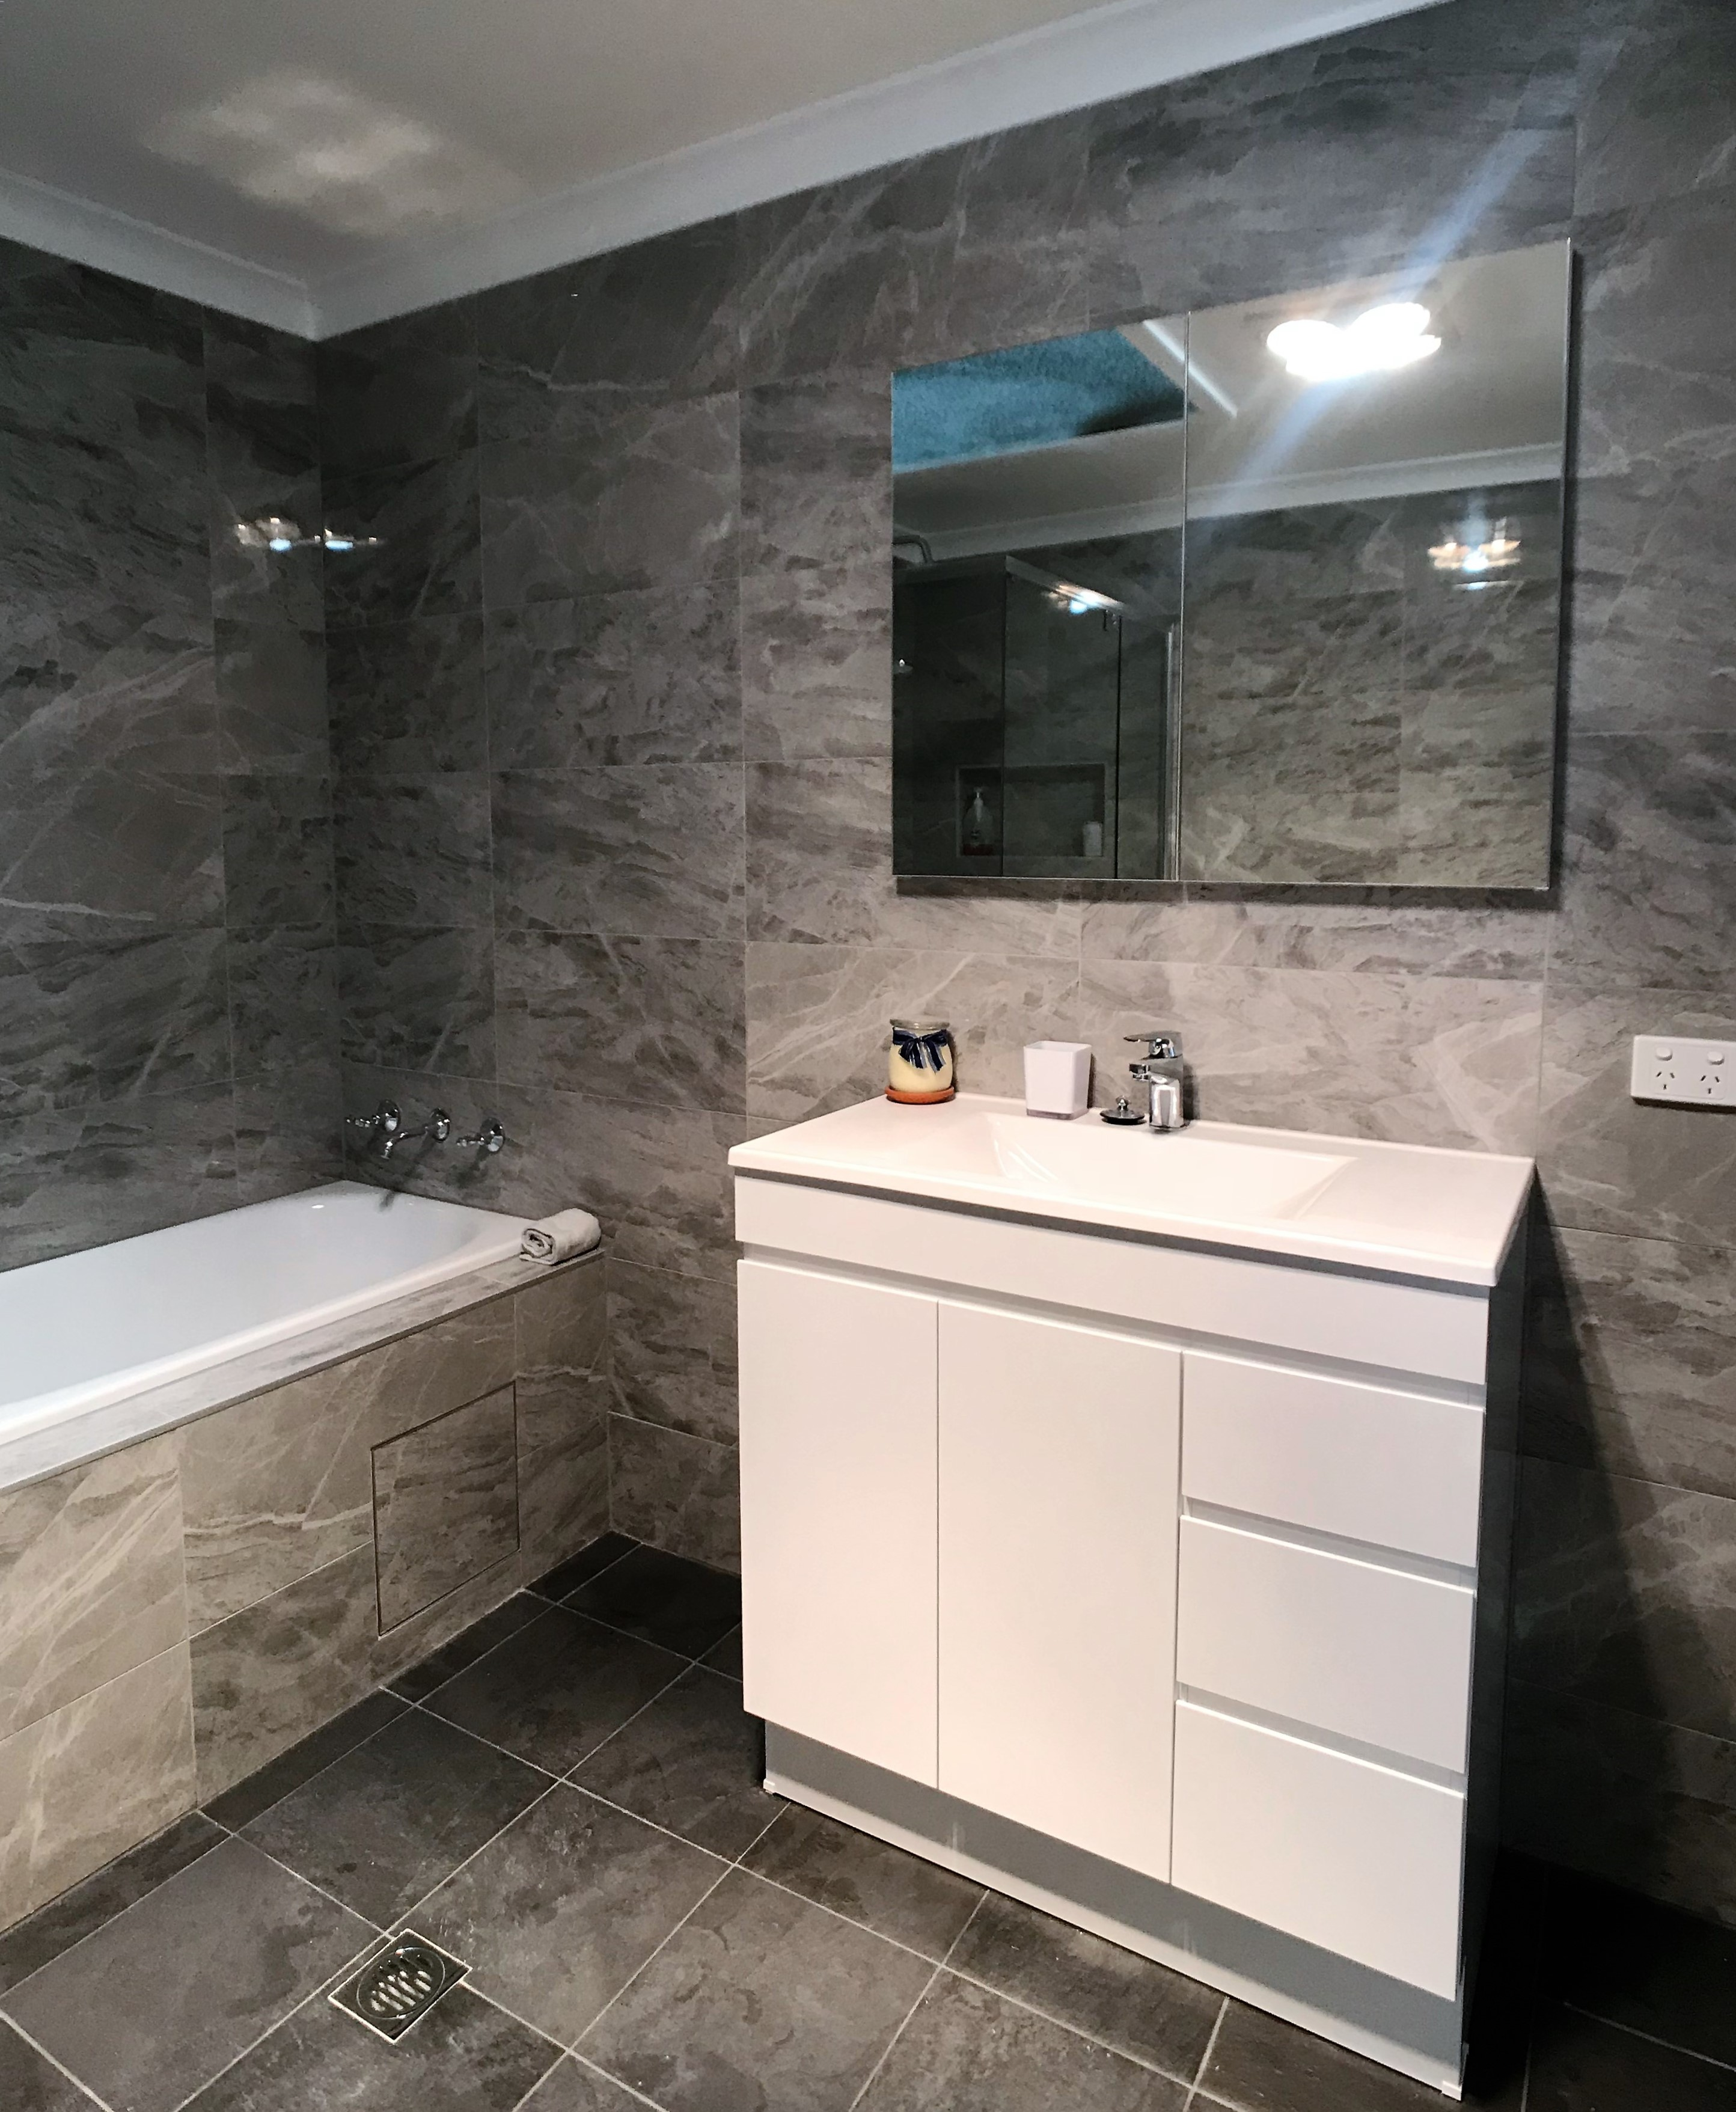 Bathroom with grey color tiles on walls and floors with white bathtub and countertops.